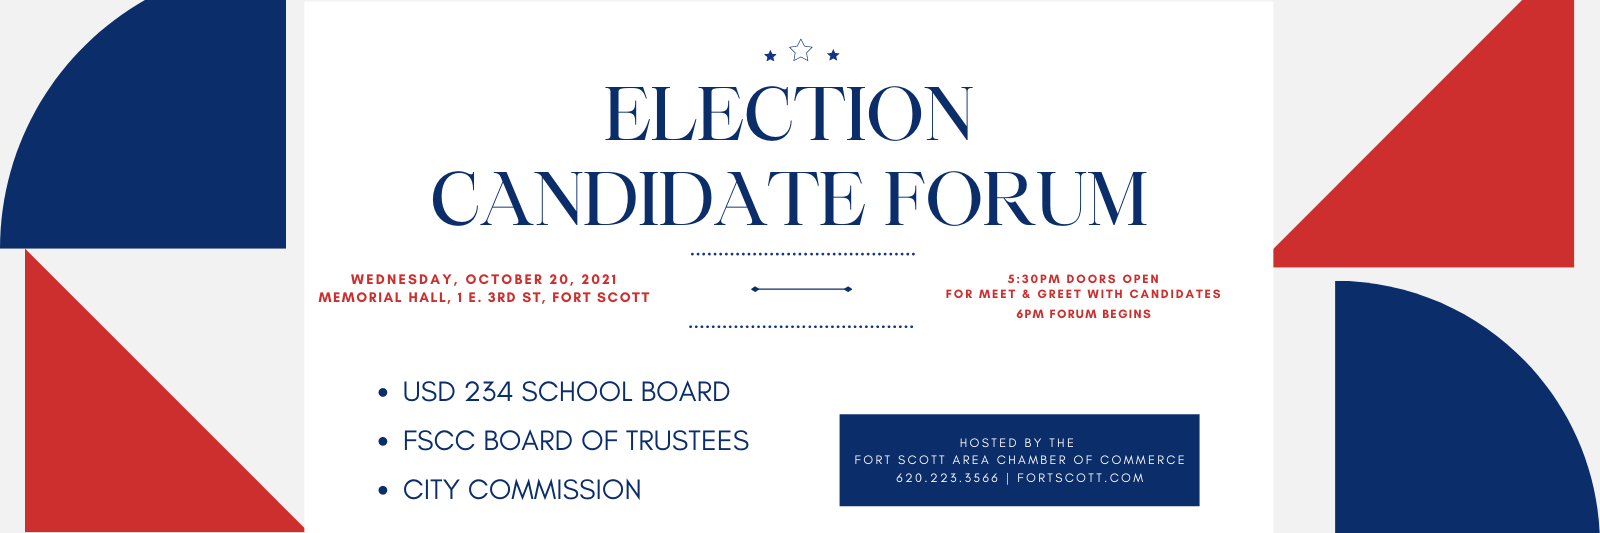 Election-Candidate-Forum-2021-10-20-Website-Graphic-(1).png